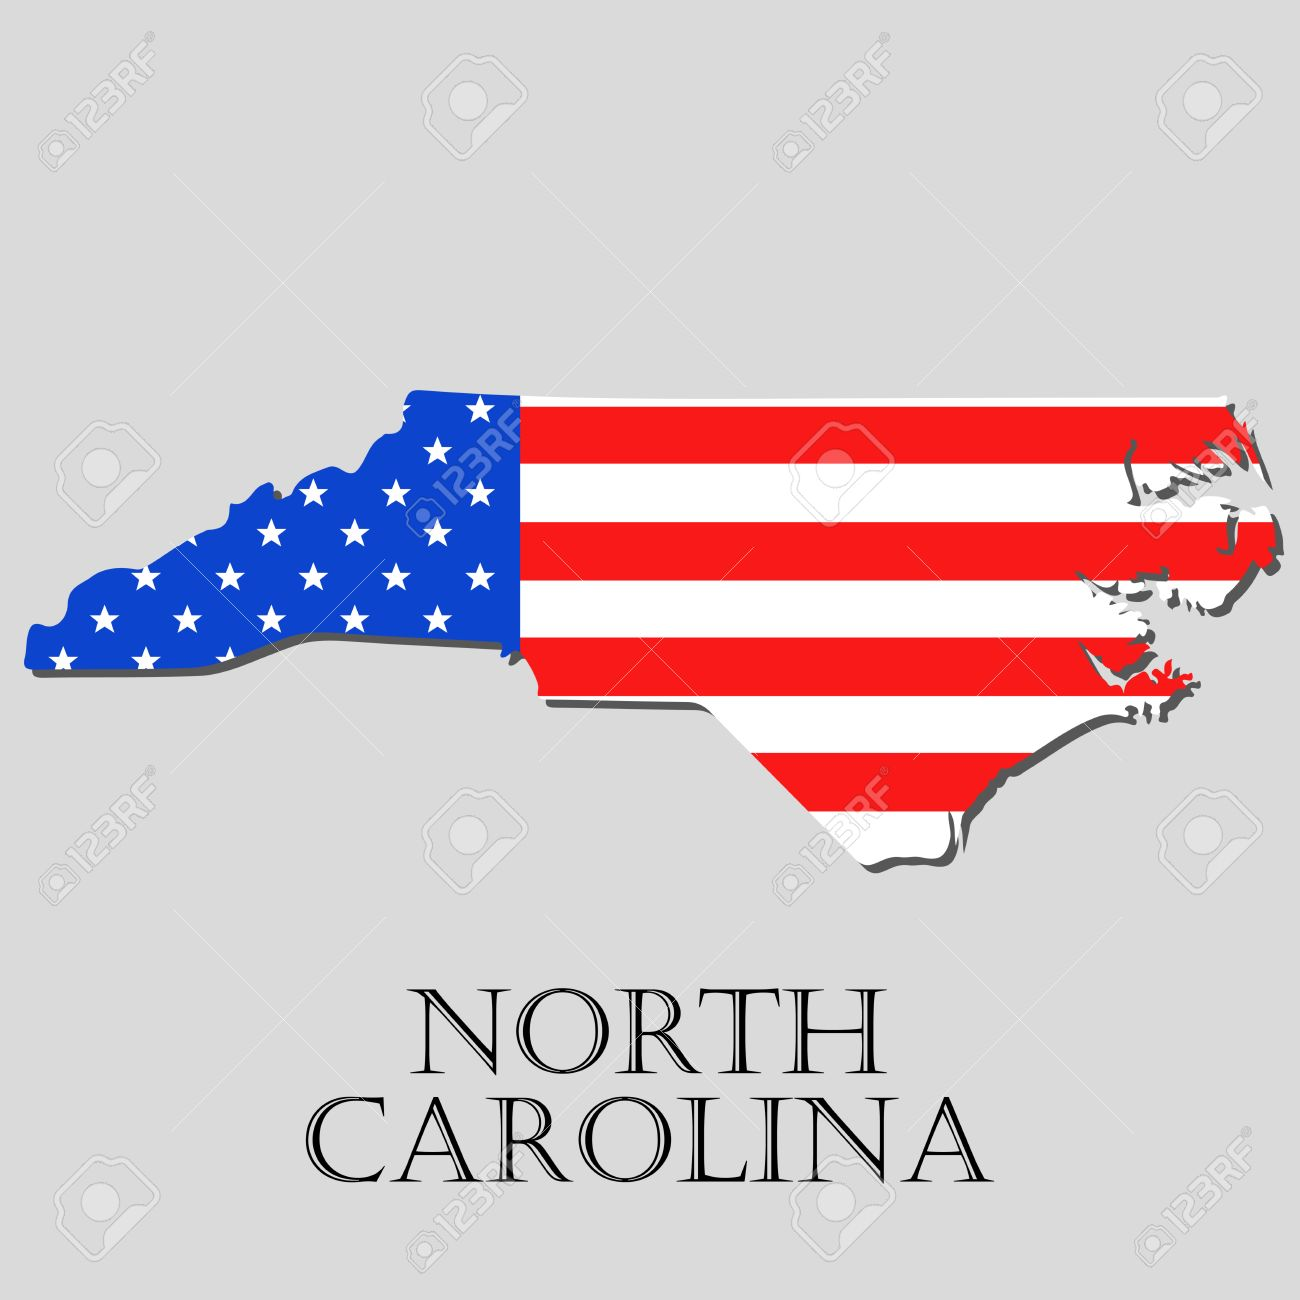 Map Of The State Of North Carolina And American Flag Illustration - North carolina on the us map